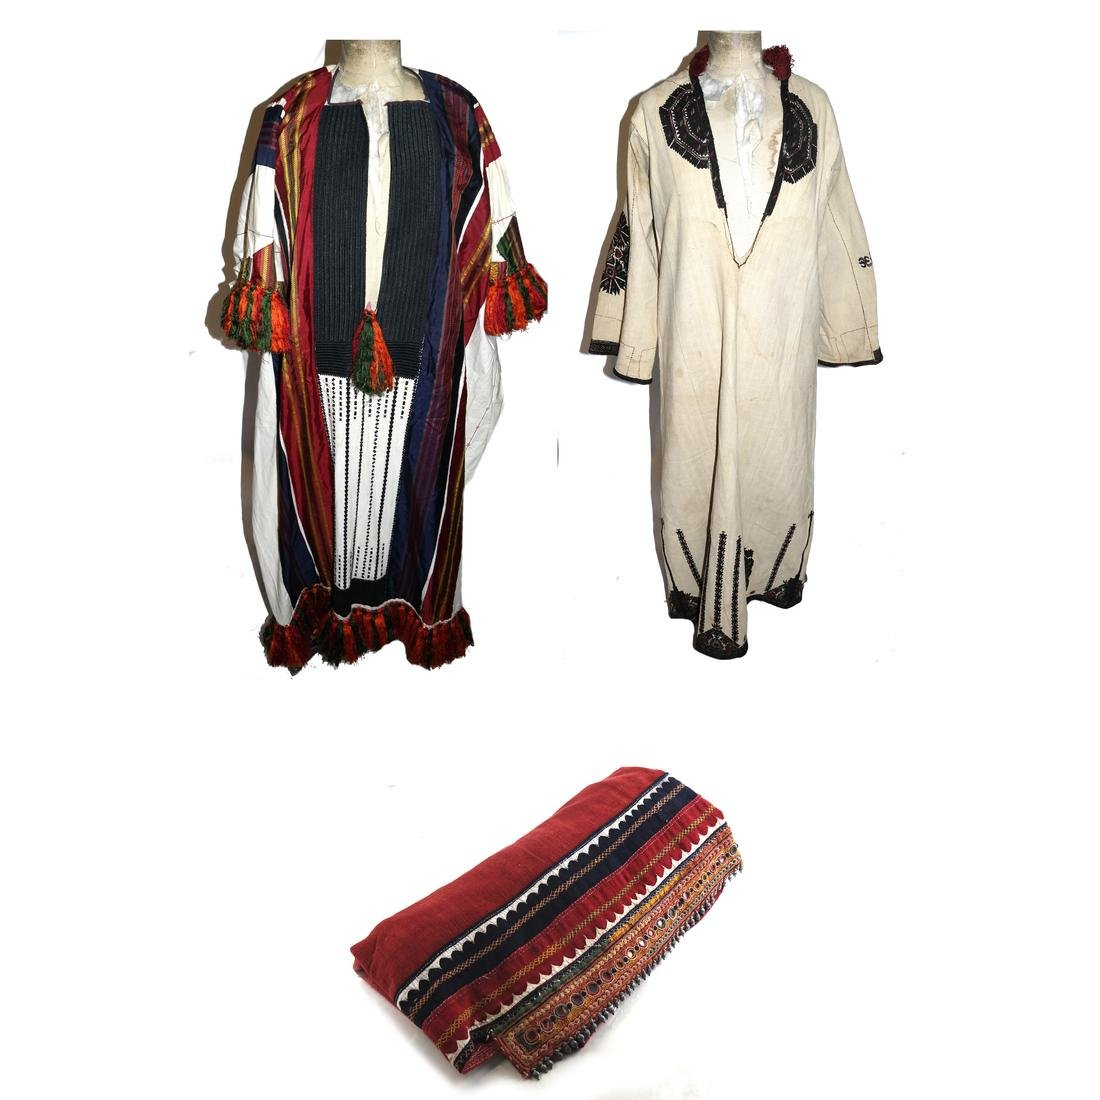 Antique Central Asian Robe and Another